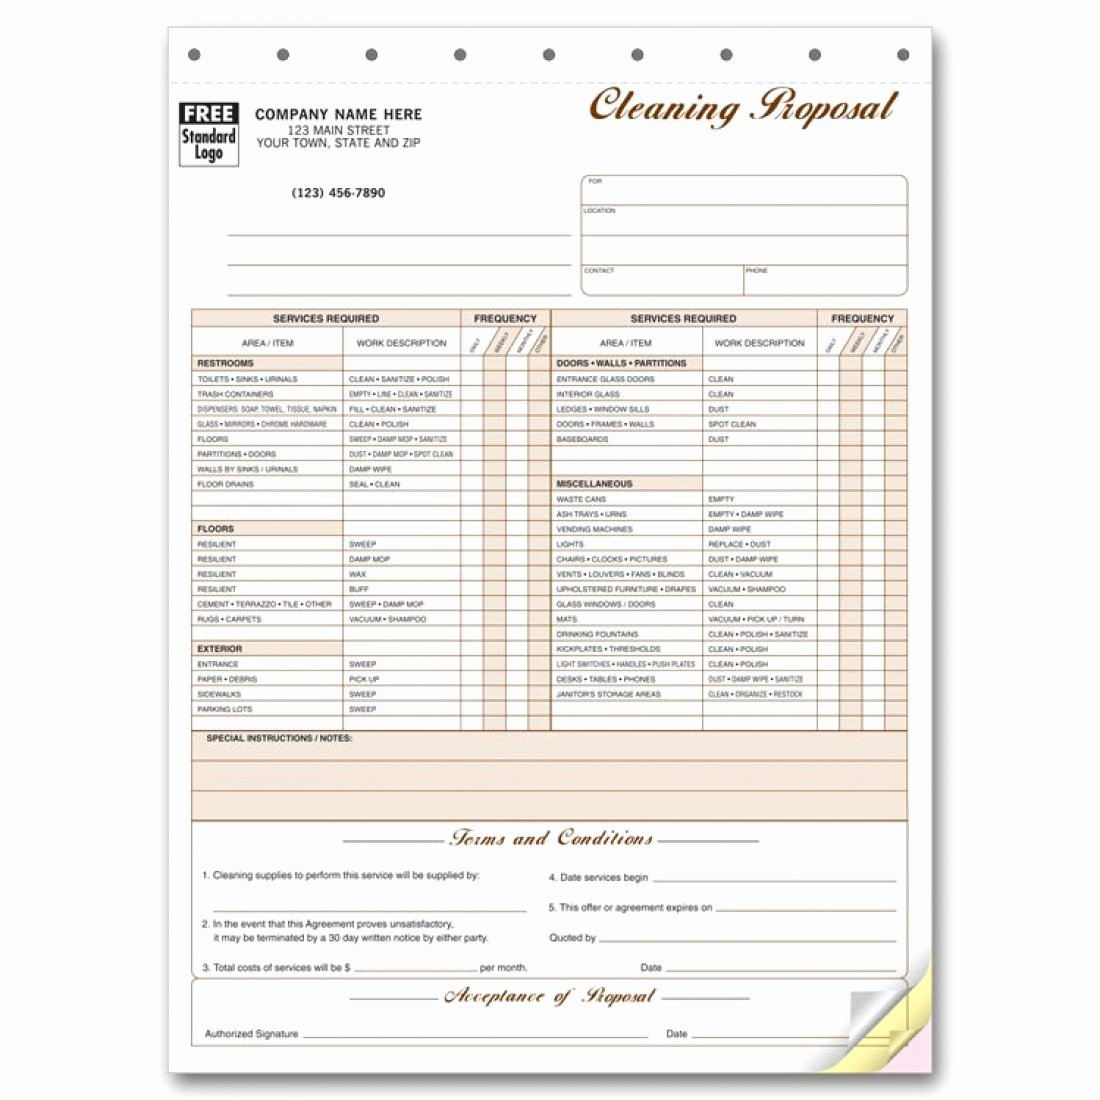 Cleaning Proposal Template Pdf New Cleaning Proposal forms 5521 at Print Ez